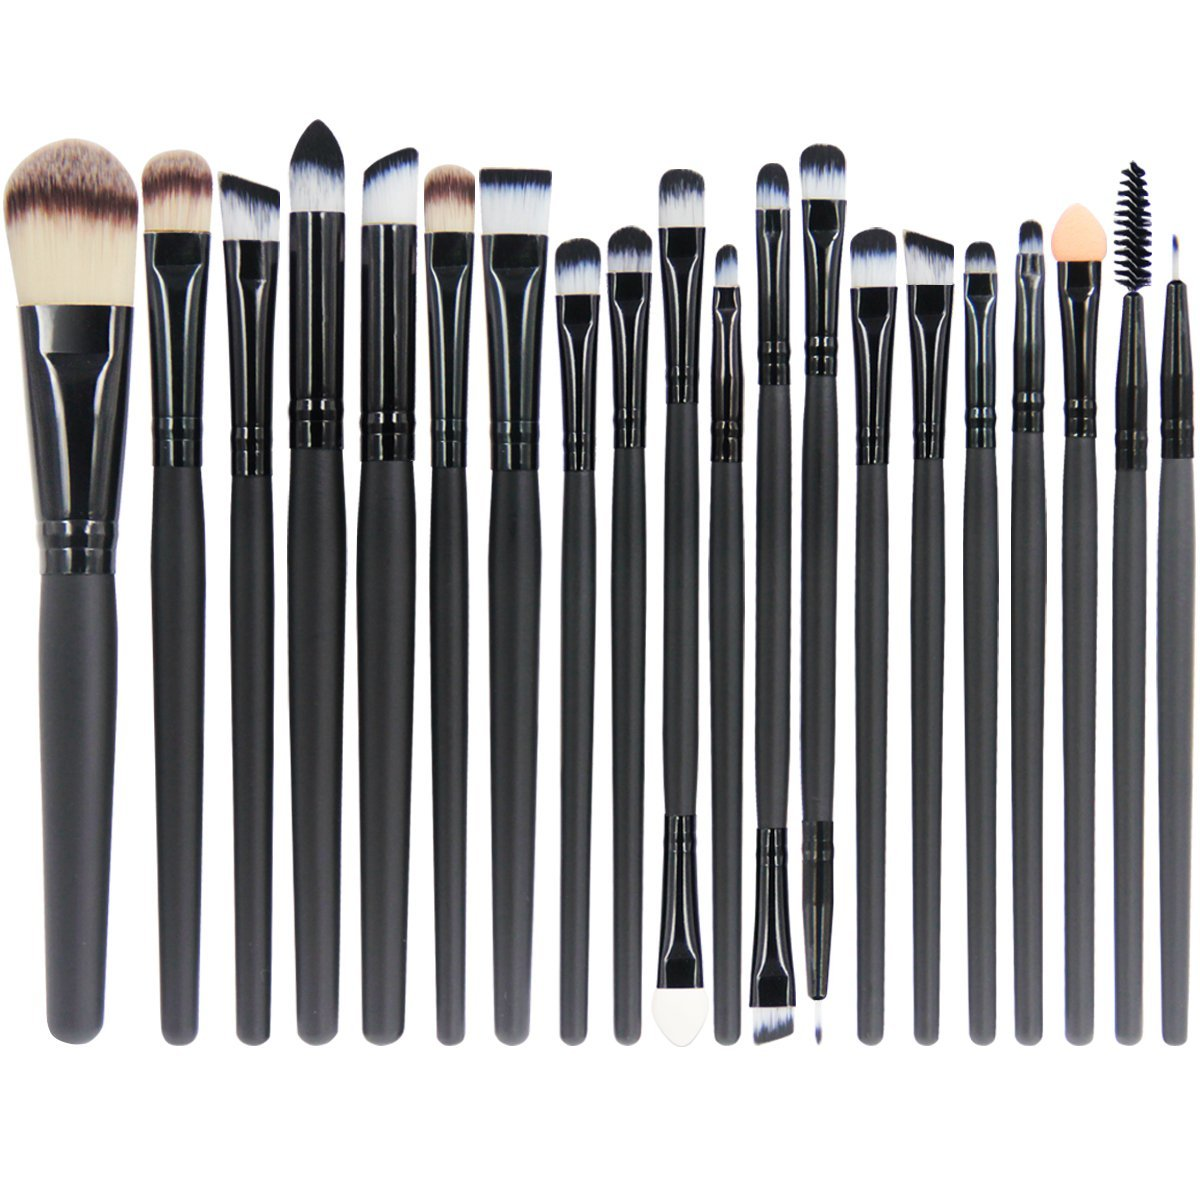 Vander 20Pcs Makeup Face&eye Powder Eyeshadow Eyeliner LA Lip Cosmetic Makeup Brushes